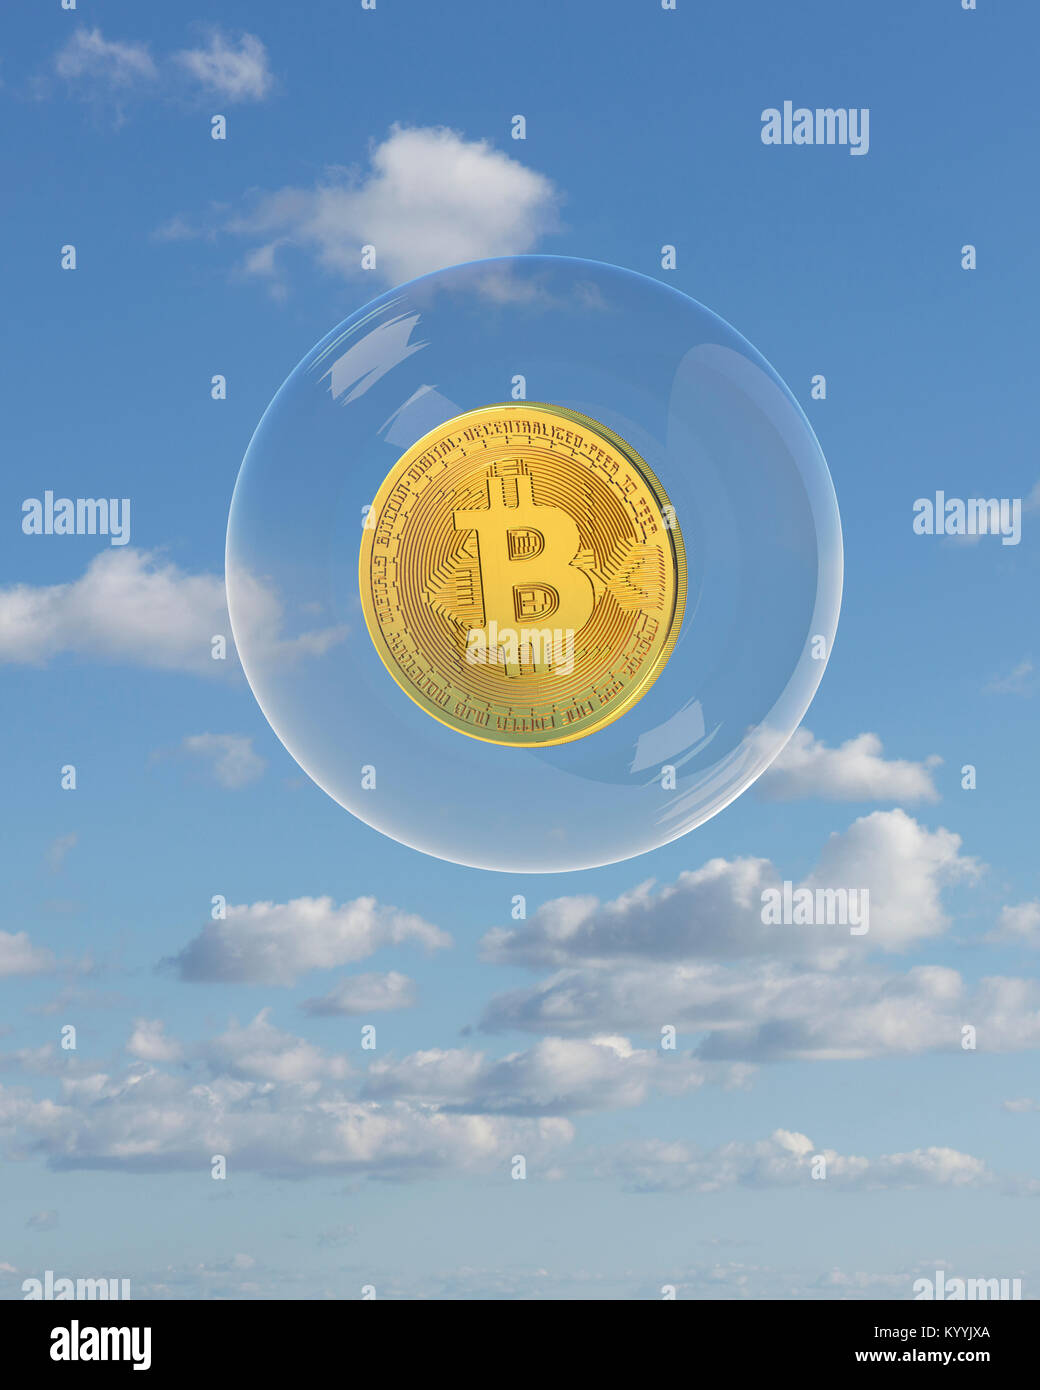 Bitcoin floating in a bubble - blockchain, cryptocurrency Konzept Stockbild